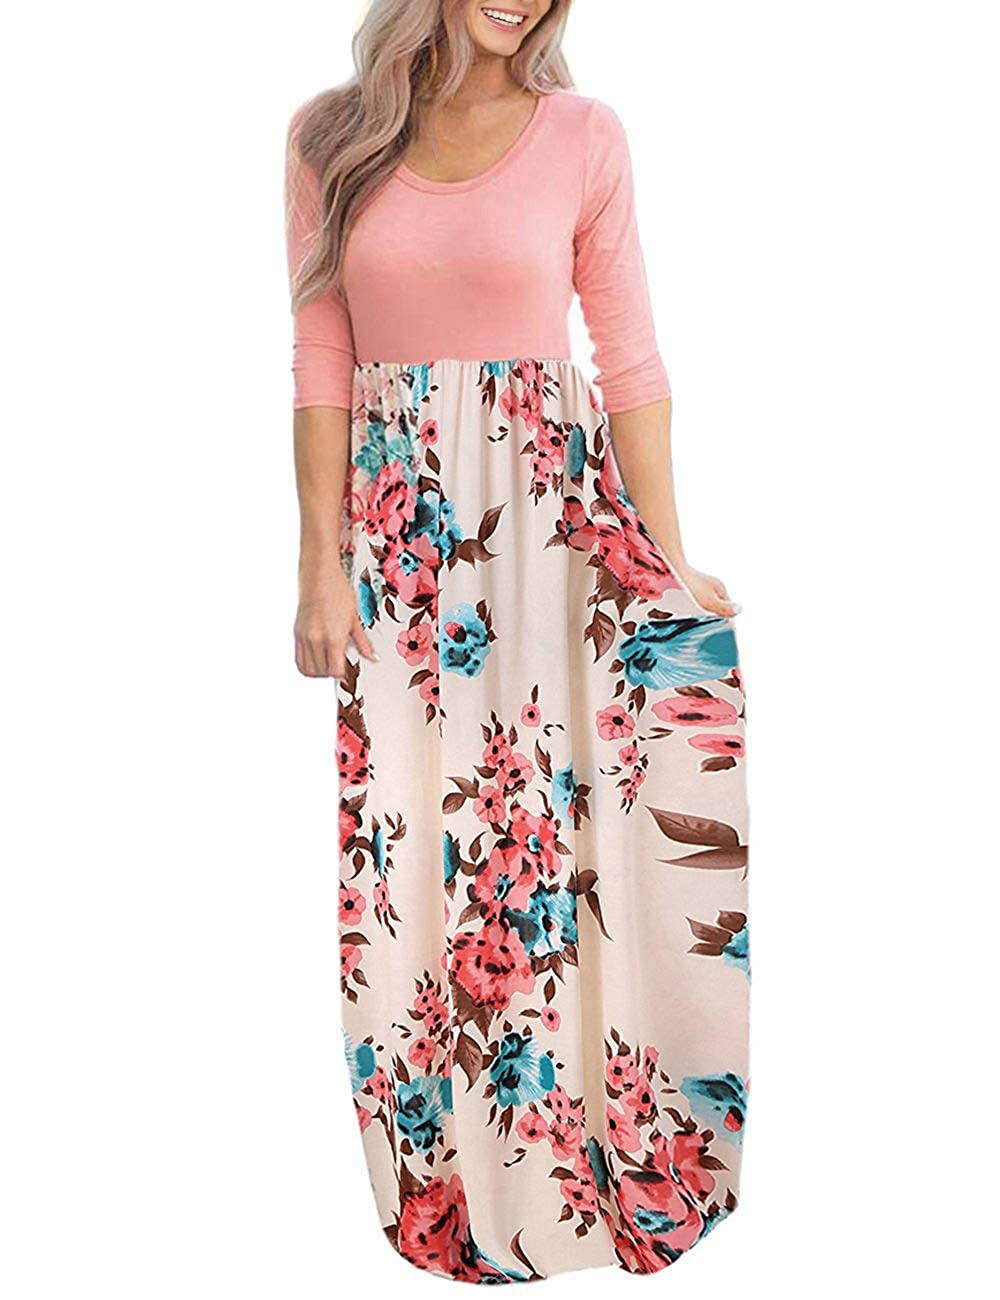 0f8b55bf92 DUNEA Women's Maxi Dress Floral Printed Autumn 3/4 Sleeve Casual Tunic Long  Maxi Dress at Amazon Women's Clothing store: